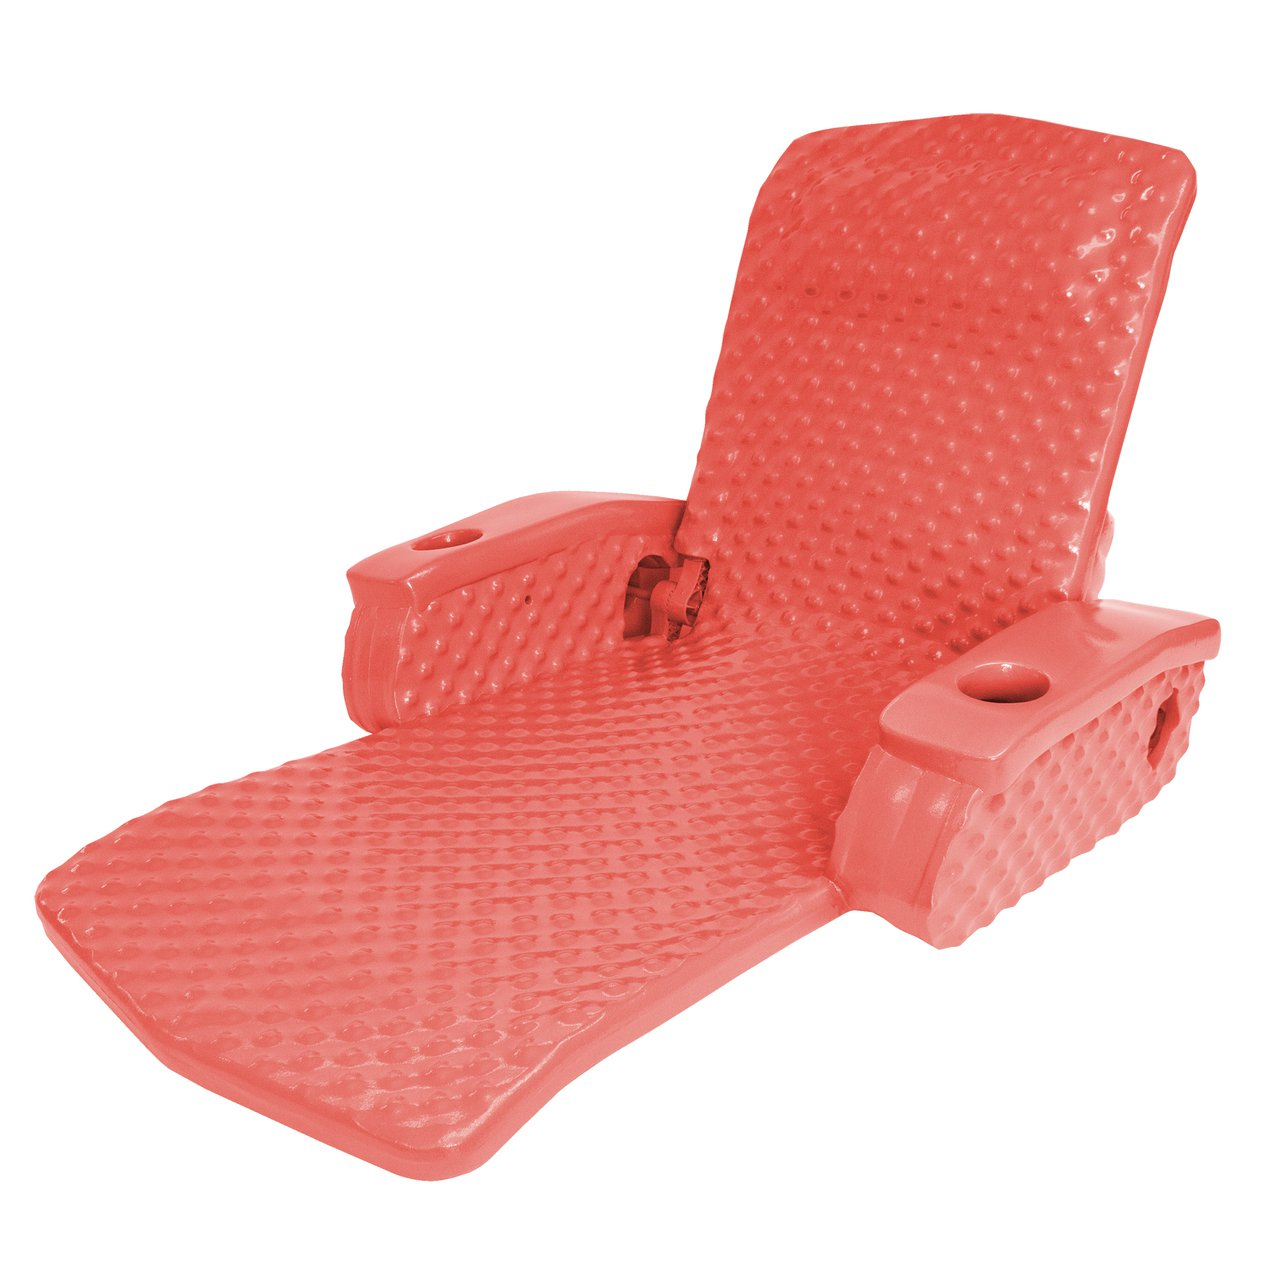 TRC Recreation Swimming Pool Soft Adjustable Folding Chair Lounge Float, Red